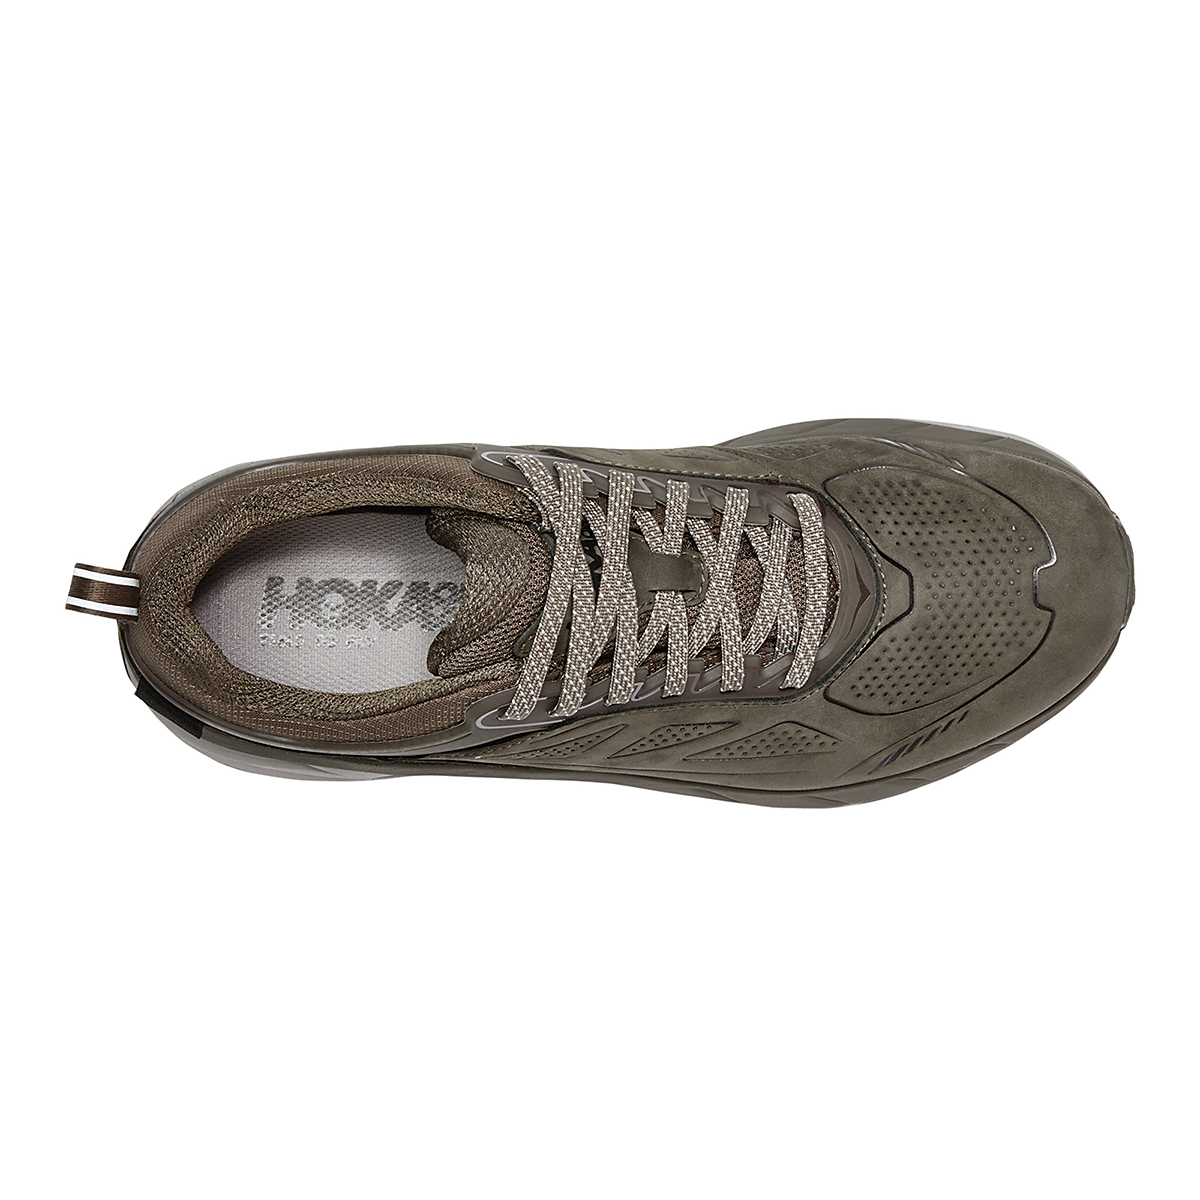 Women's Hoka One One Challenger Low Gore-Tex Trail Running Shoe - Color: Major Brown/Heather - Size: 5 - Width: Regular, Major Brown/Heather, large, image 5